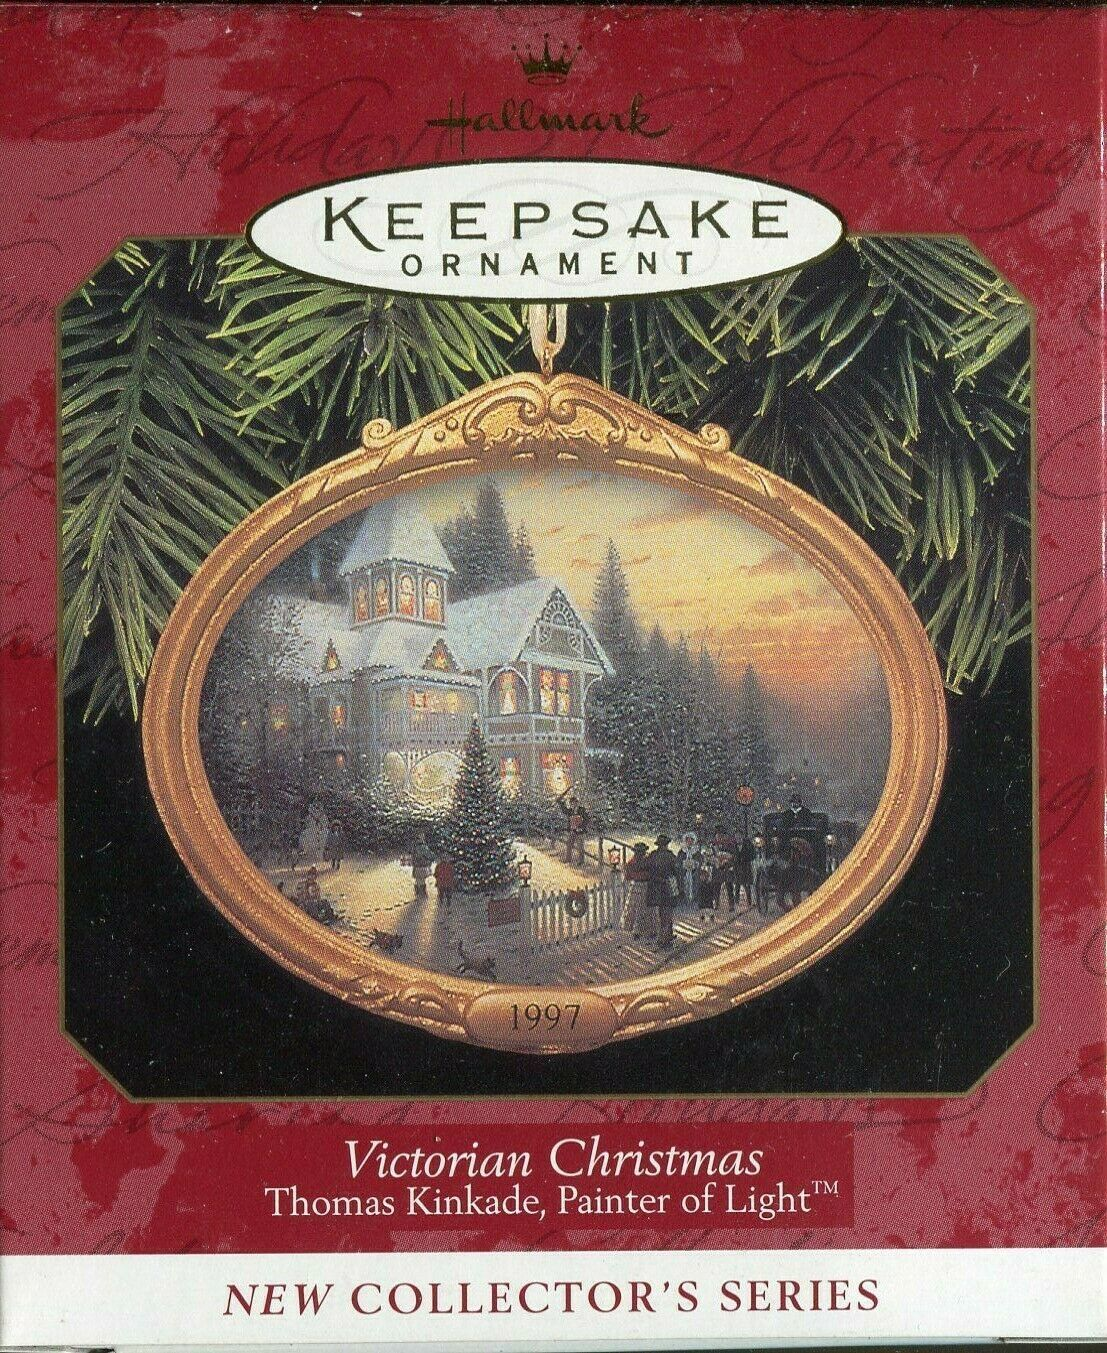 Primary image for 1997 New in Box - Hallmark Keepsake Christmas Ornament - Victorian Christmas